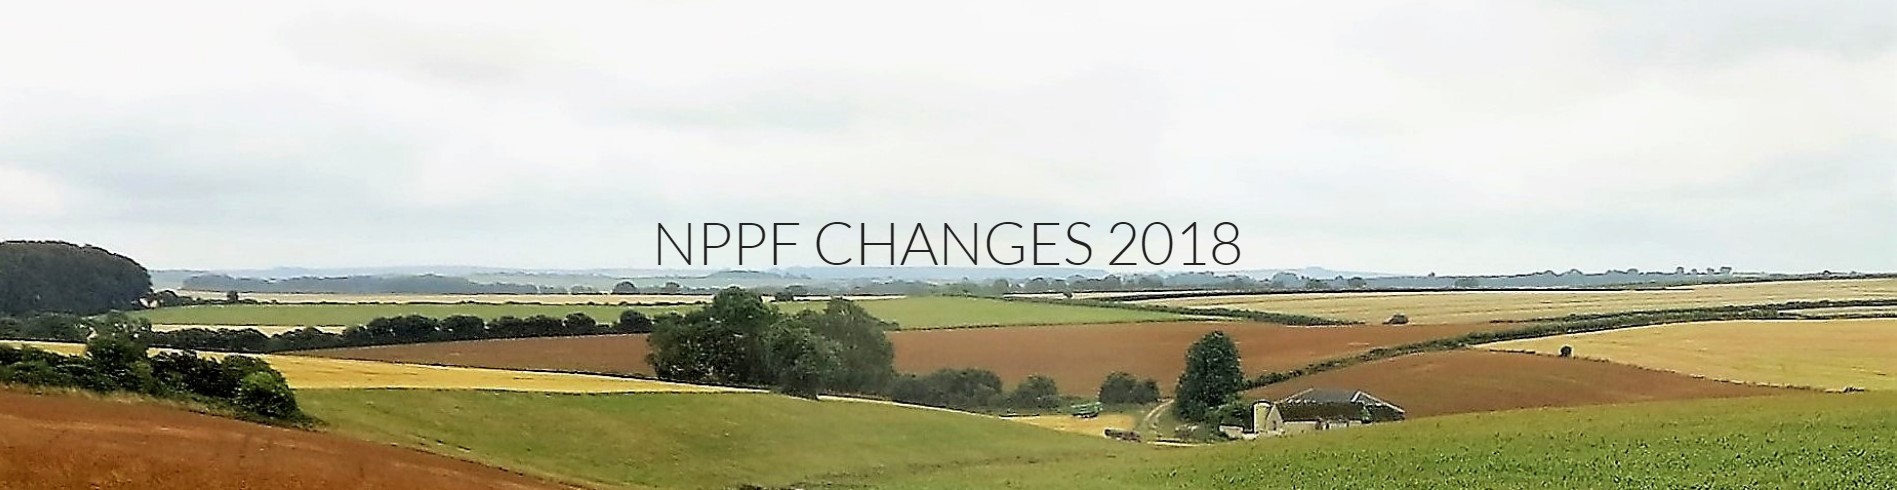 NPPF Changes 2018 - The South Hams Society